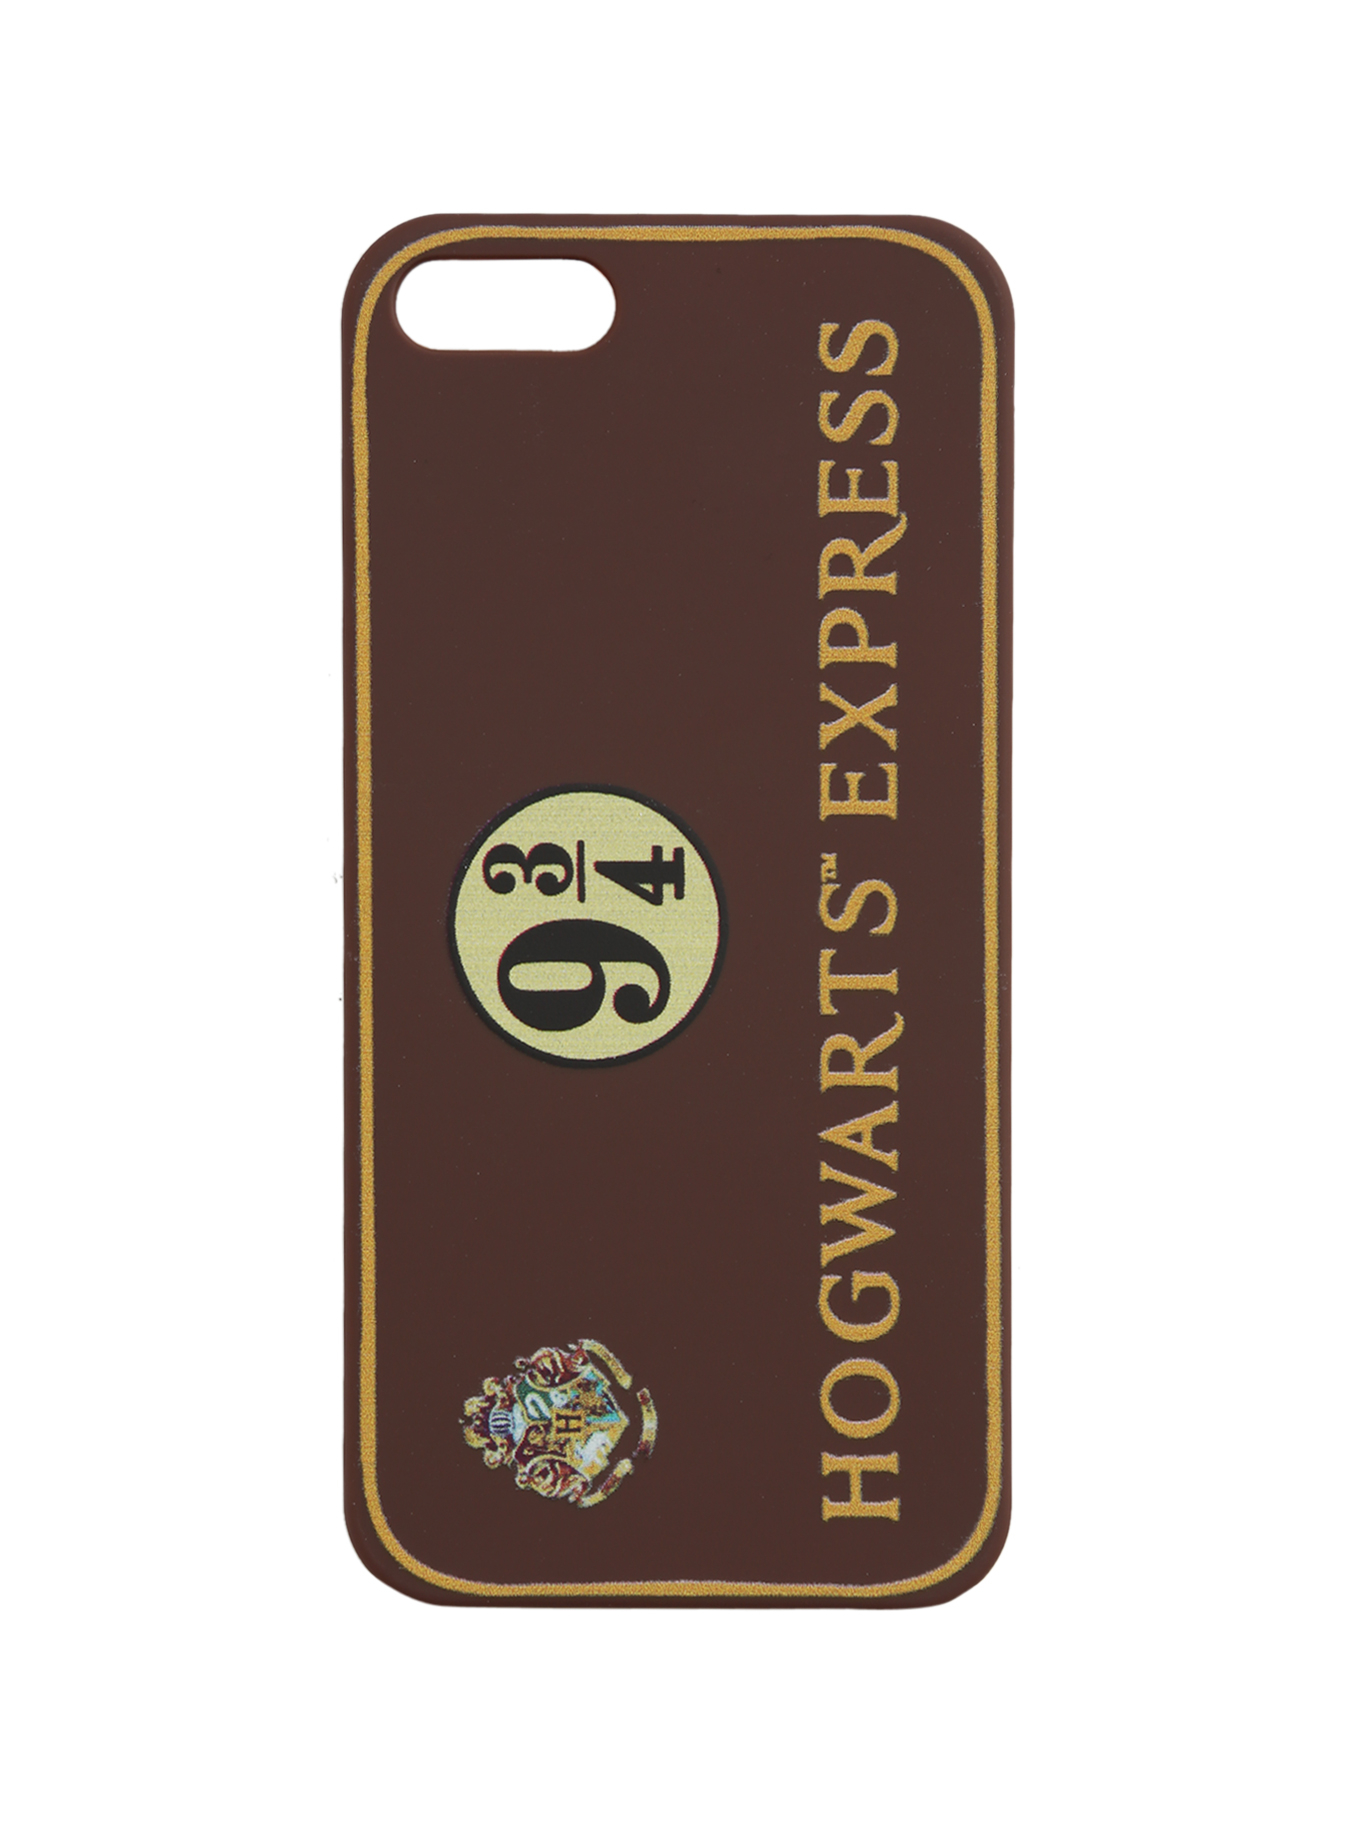 Harry Potter Hogwarts Express iPhone 4/4S Case | Hot Topic